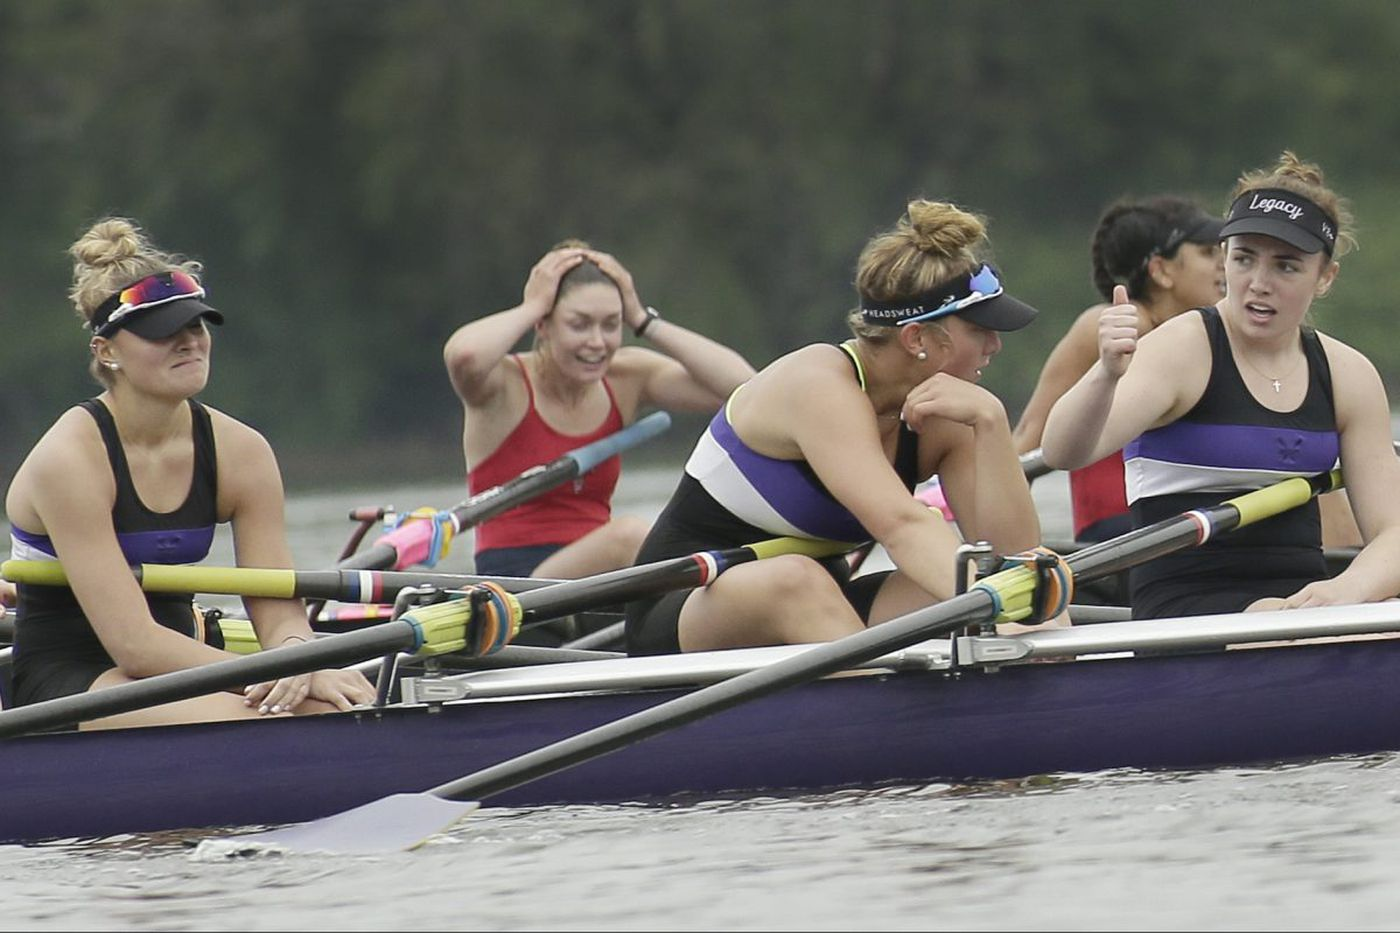 Mount St. Joseph captures five medals at Stotesbury Cup Regatta